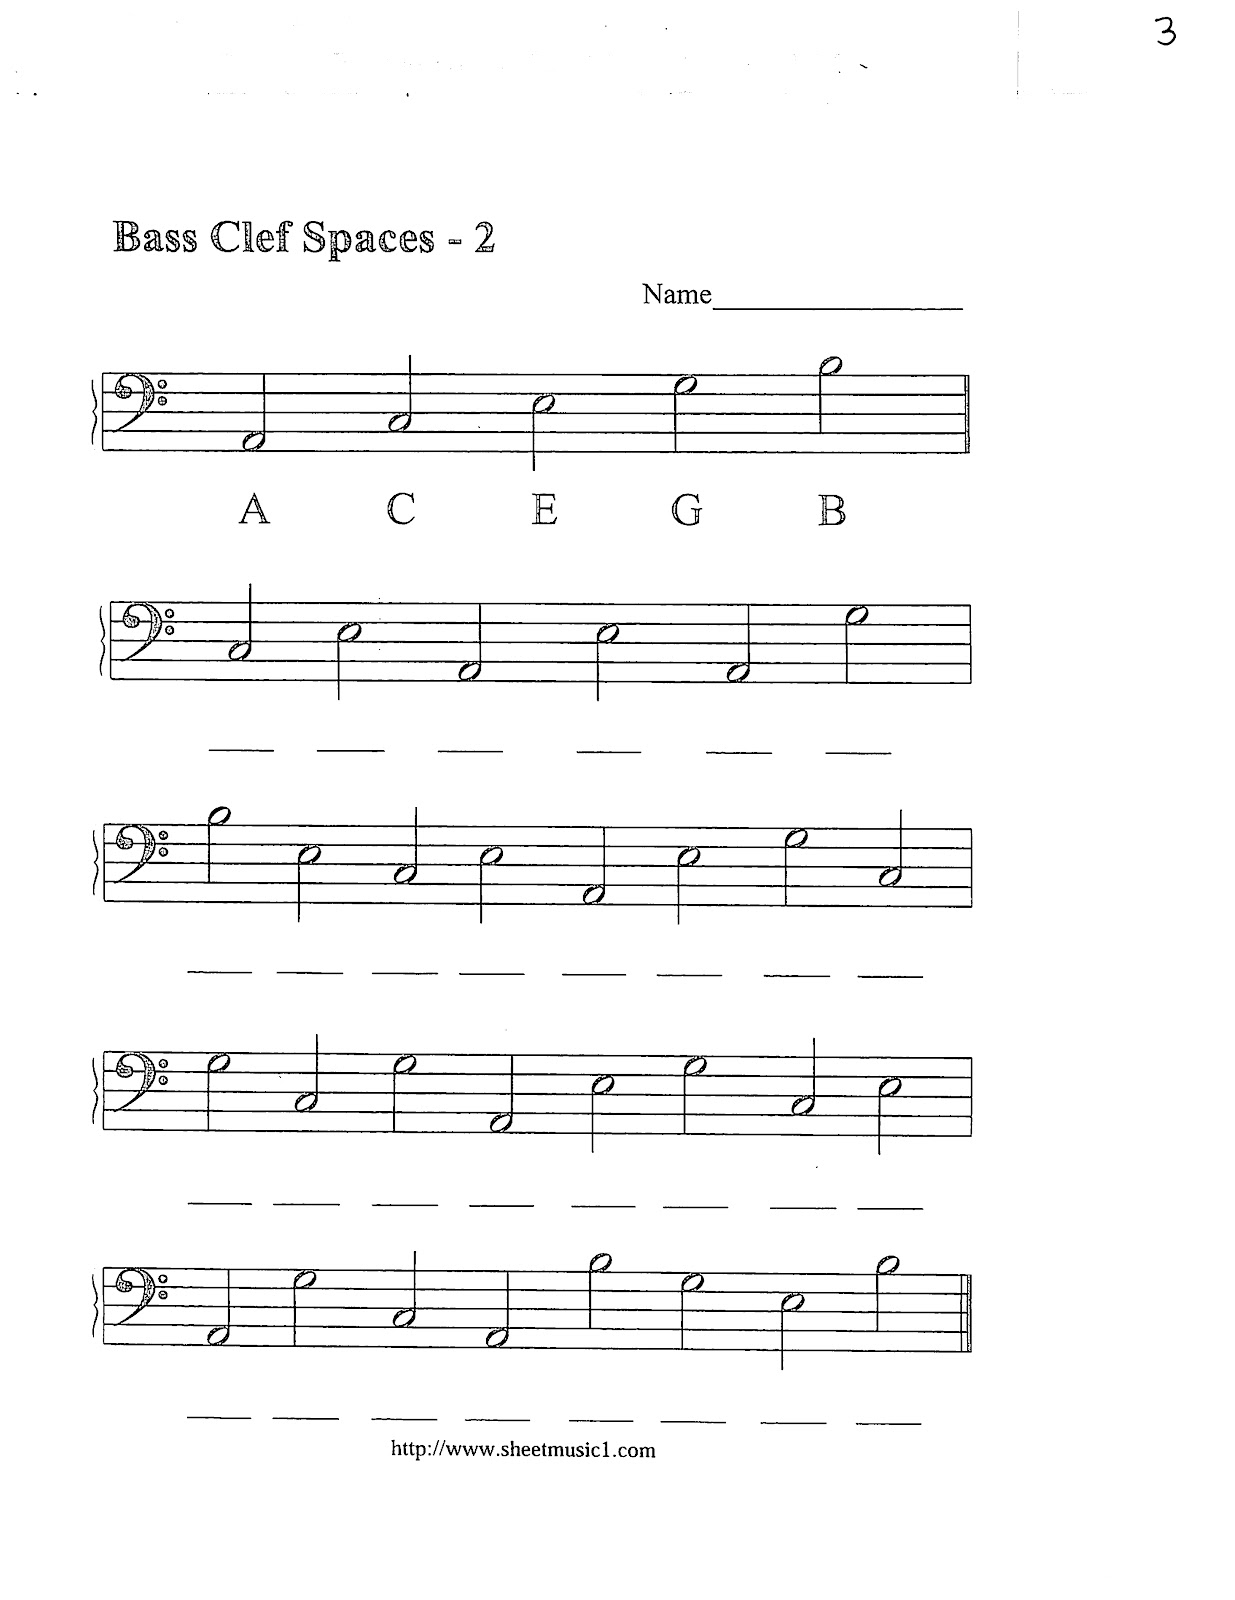 Bass Clef Note Names